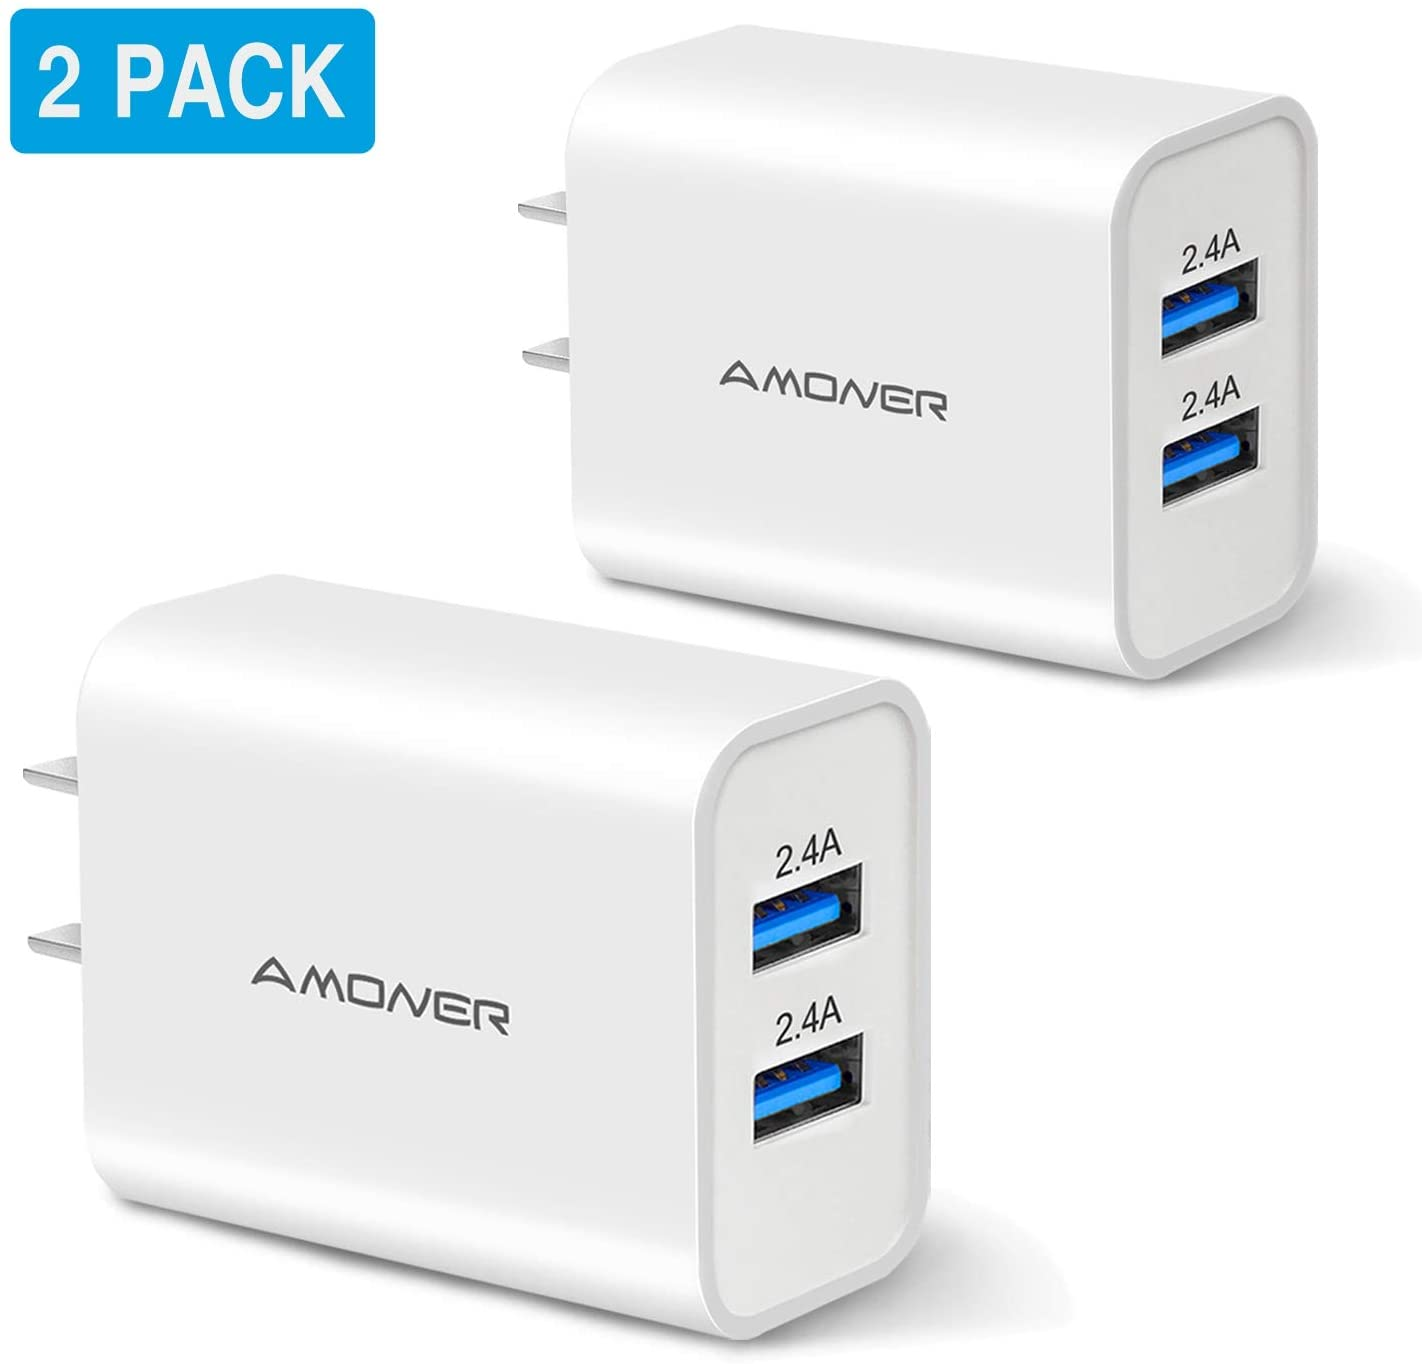 Amoner Wall Charger, Upgraded 2Pack 24W 2-Port USB Plug Cube Portable Travel Wall Charger Plug for iPhone Xs/XS Max/XR/X/8/7/6/Plus, iPad Pro/Air 2/Mini 2, Galaxy9/8/7, Note9/8, LG, Nexus and More